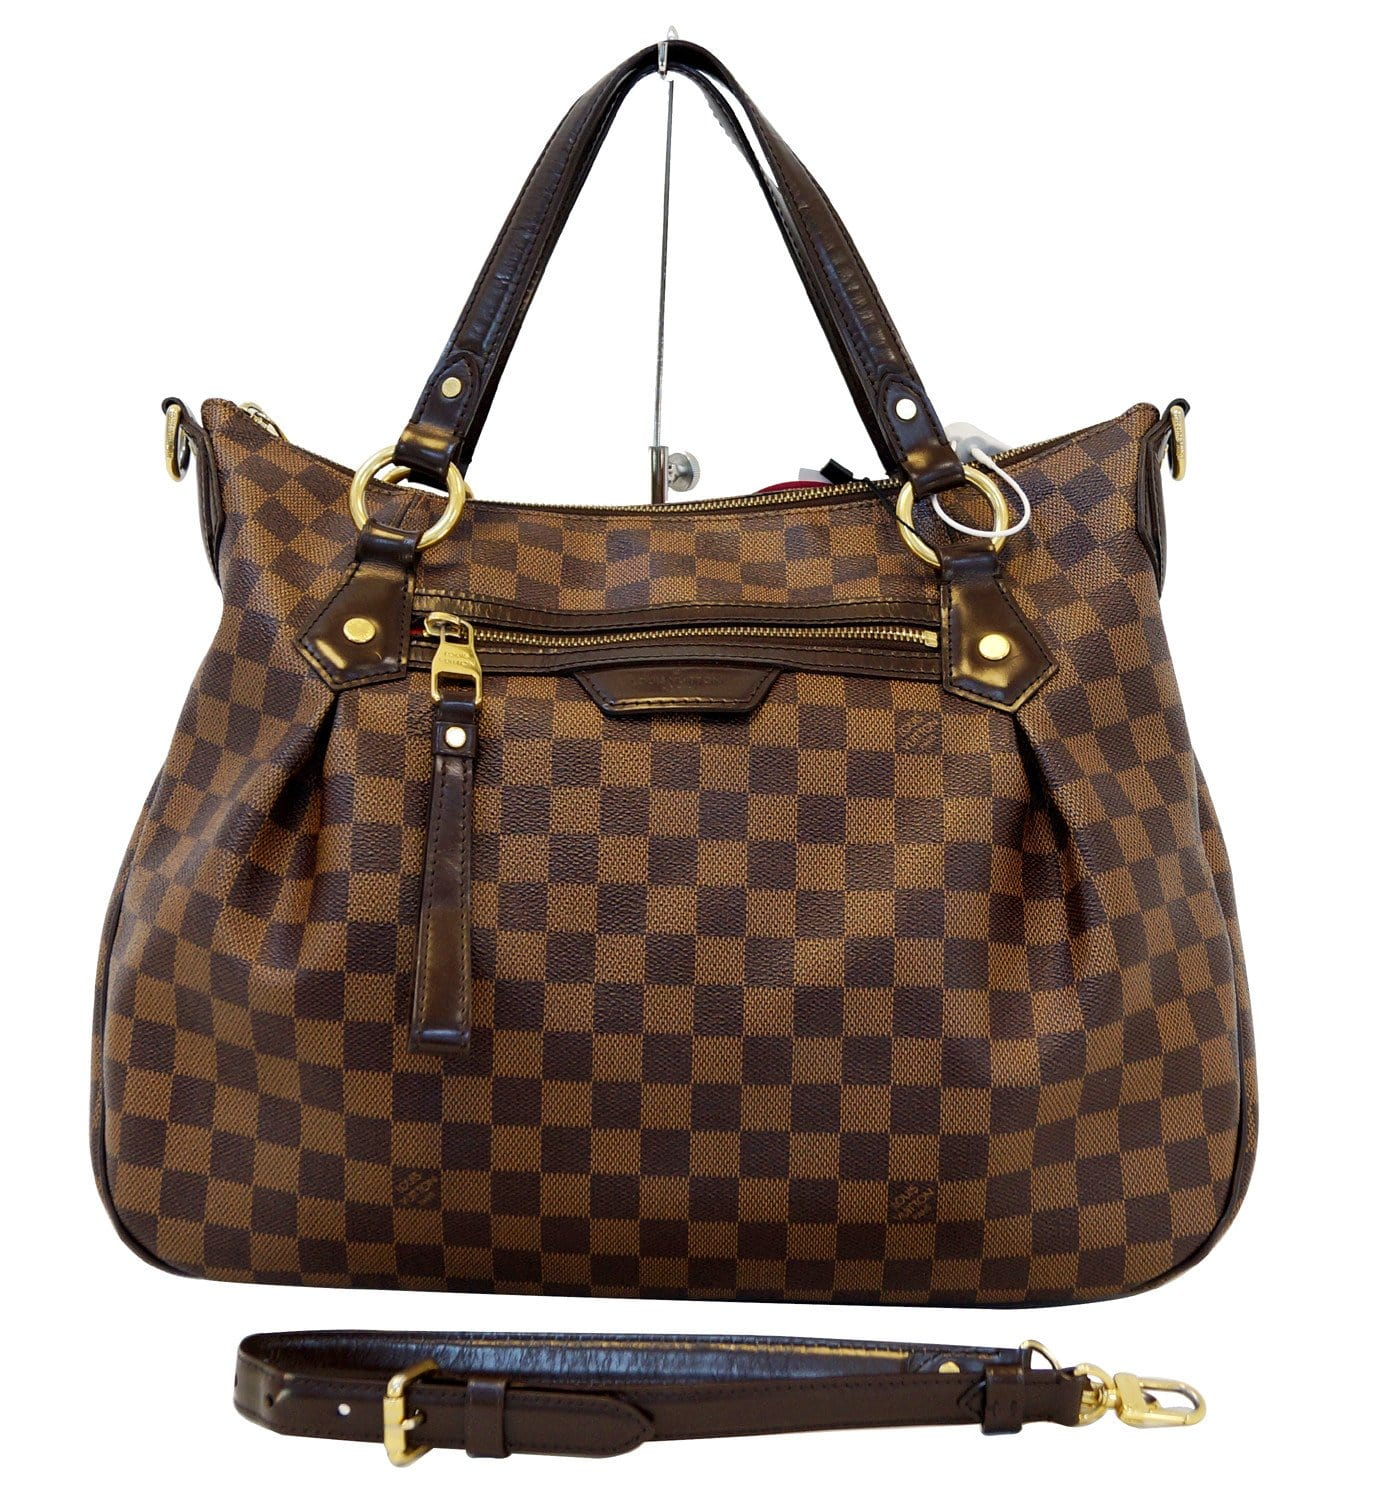 e19898a44c41 Louis Vuitton Evora MM Damier Ebene Hobo Shoulder Bag